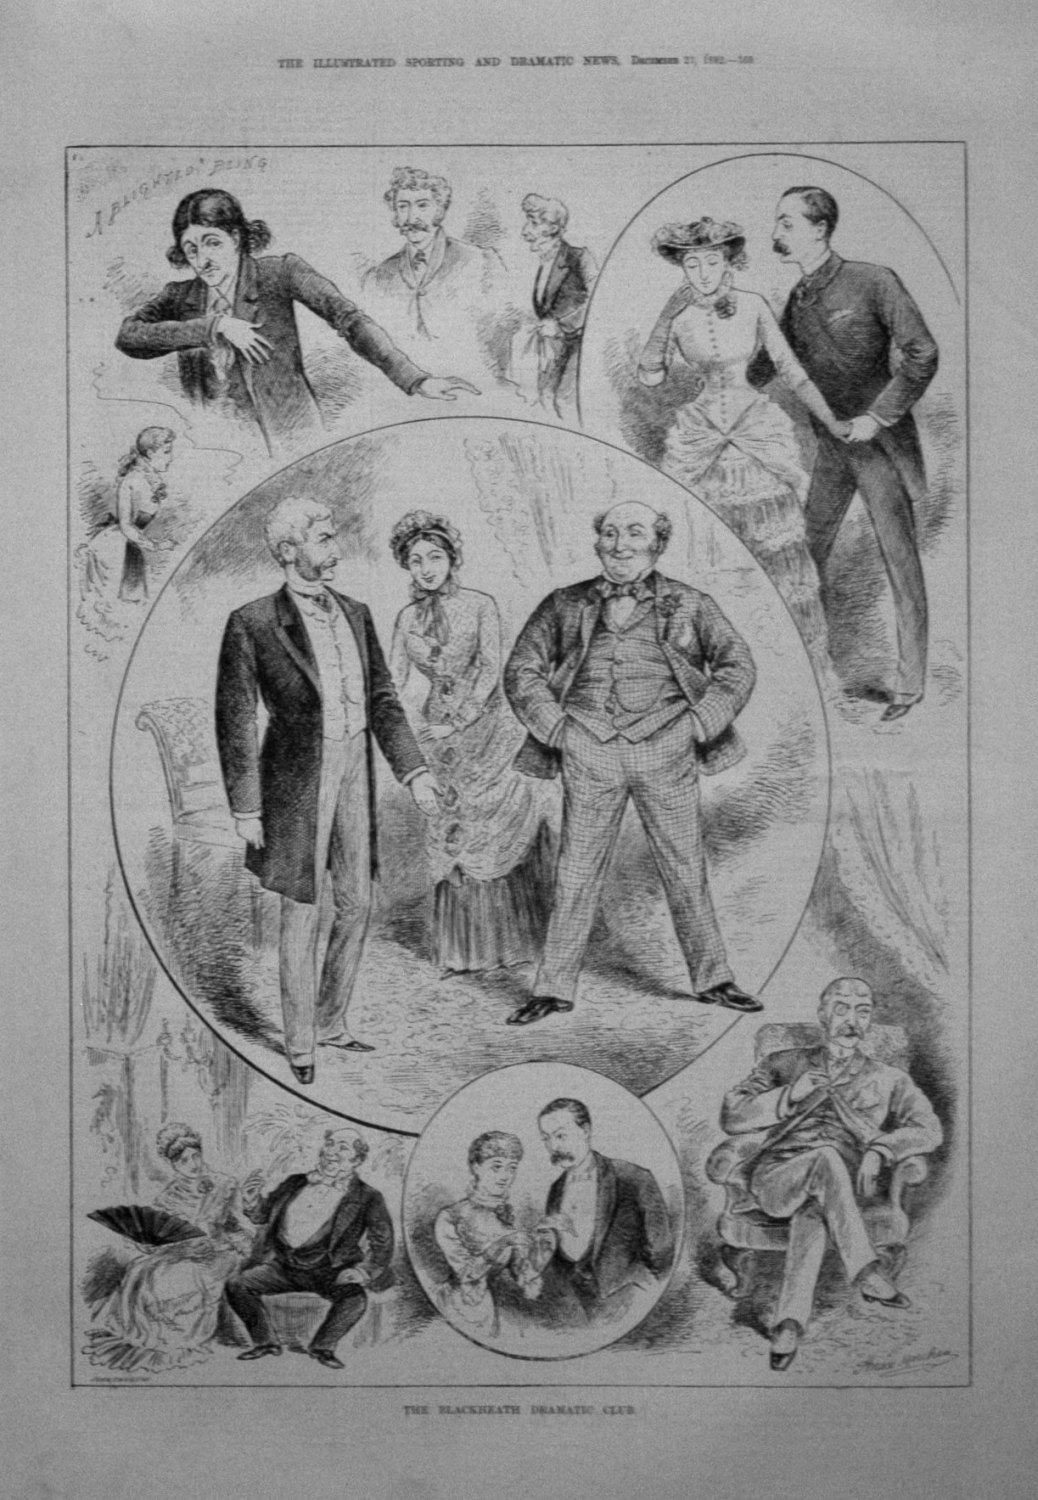 The Blackheath Dramatic Club. 1882